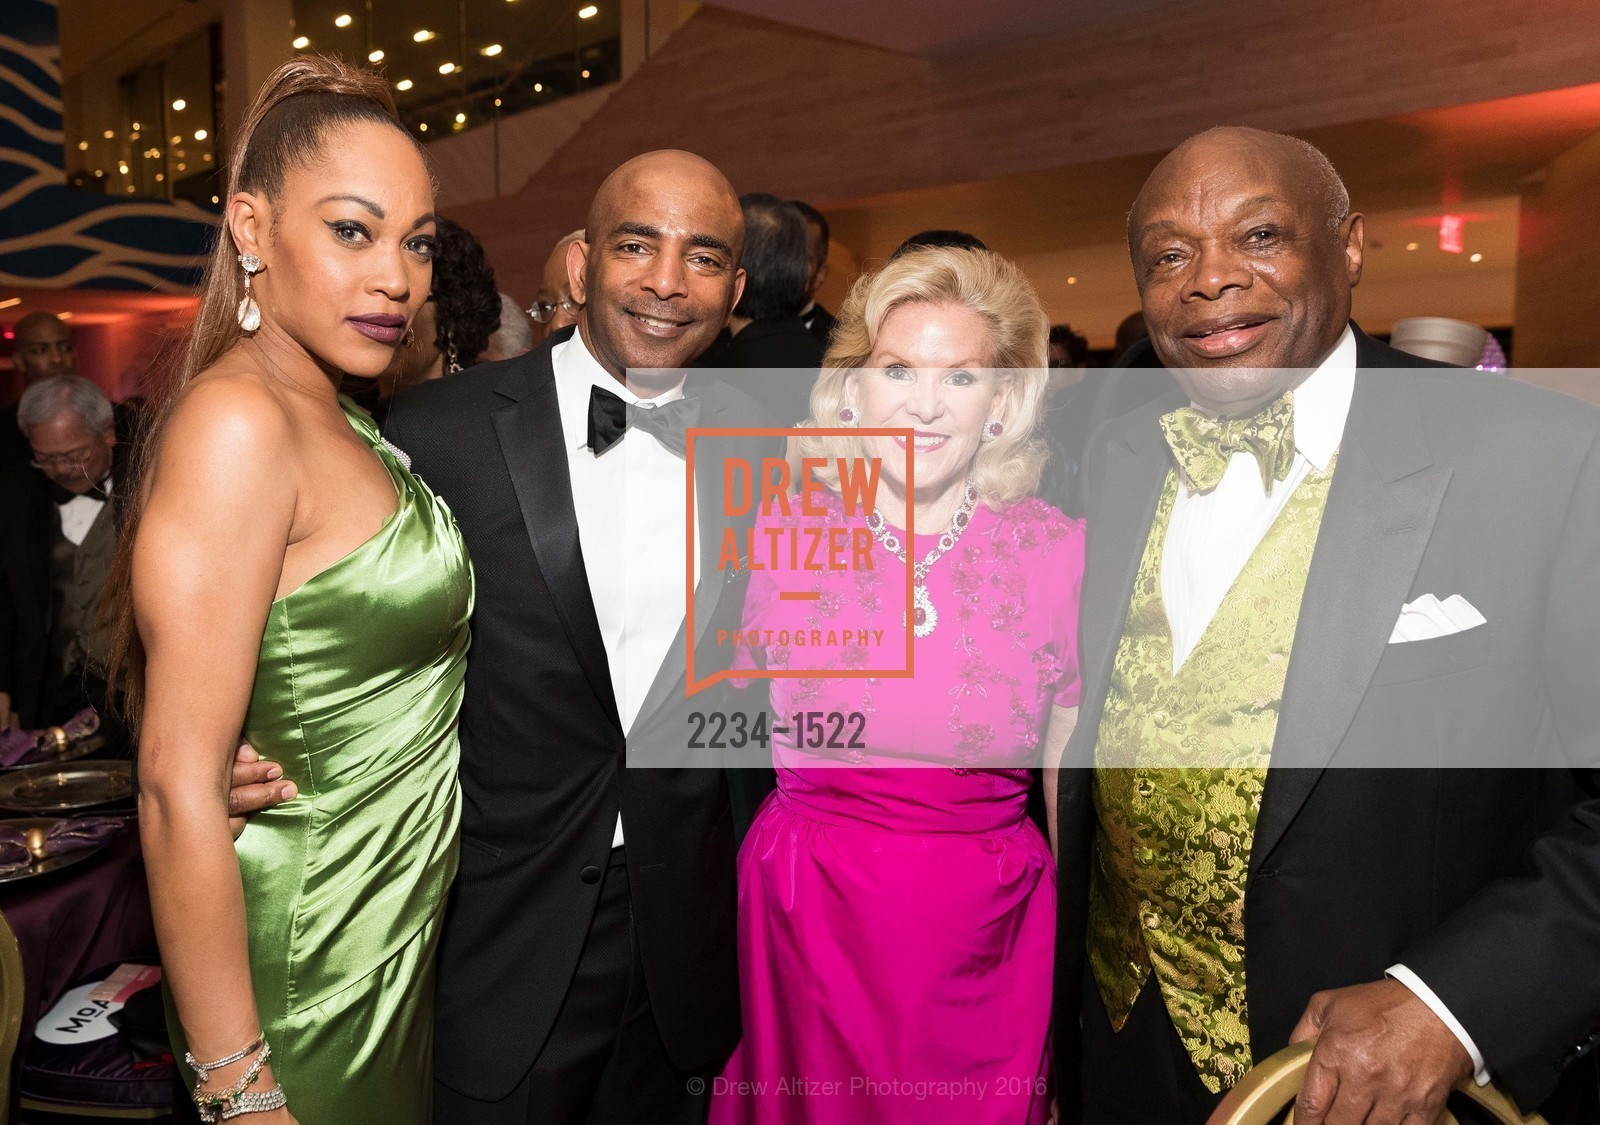 Amanda Wright, Steve Bowdry, Dede Wilsey, Willie Brown, Photo #2234-1522